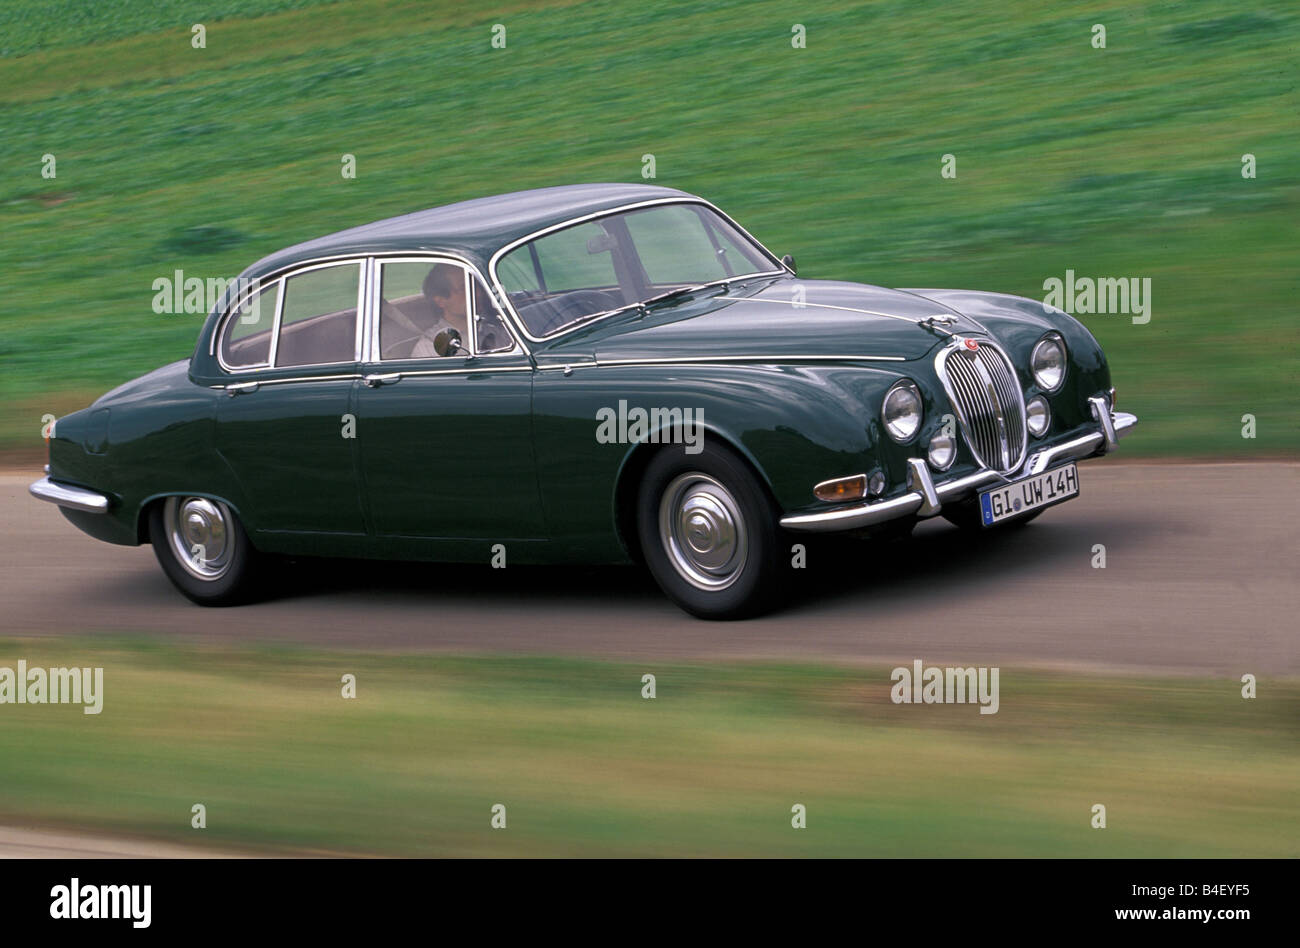 jaguar s type 3 4 auto oldtimer 1960er jahre sechziger. Black Bedroom Furniture Sets. Home Design Ideas